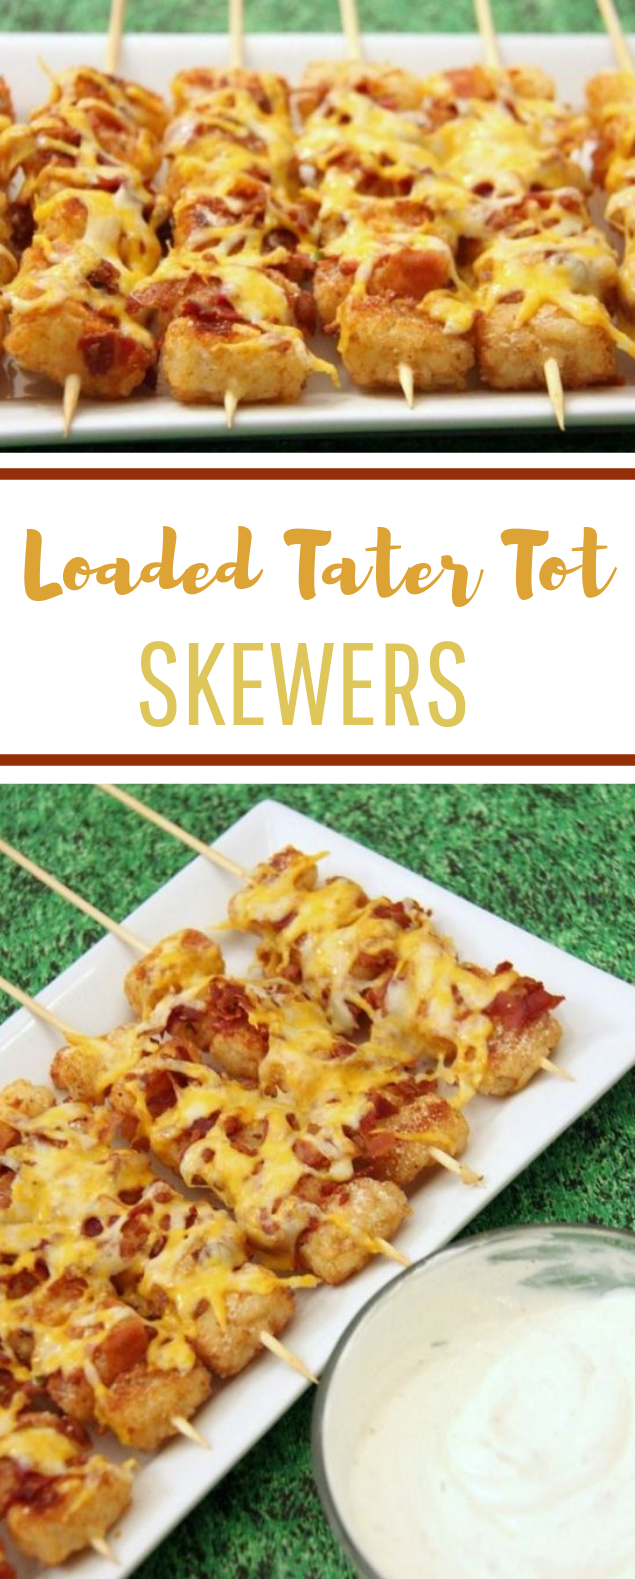 Loaded Tater Tot Skewers #summerrecipe #lunch